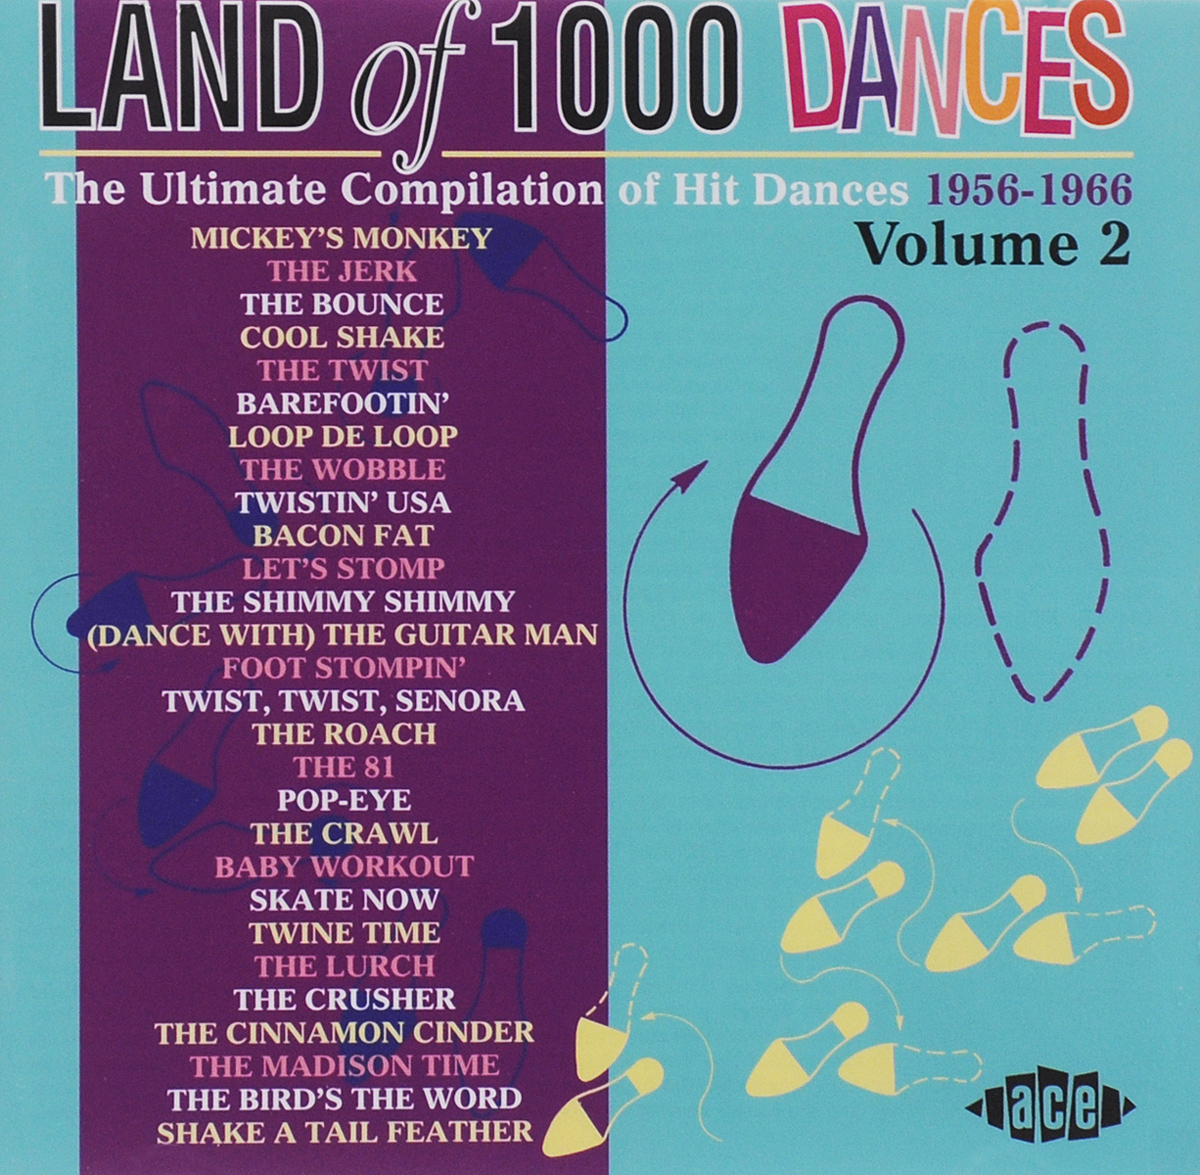 Land Of 1000 Dances. Volume 2